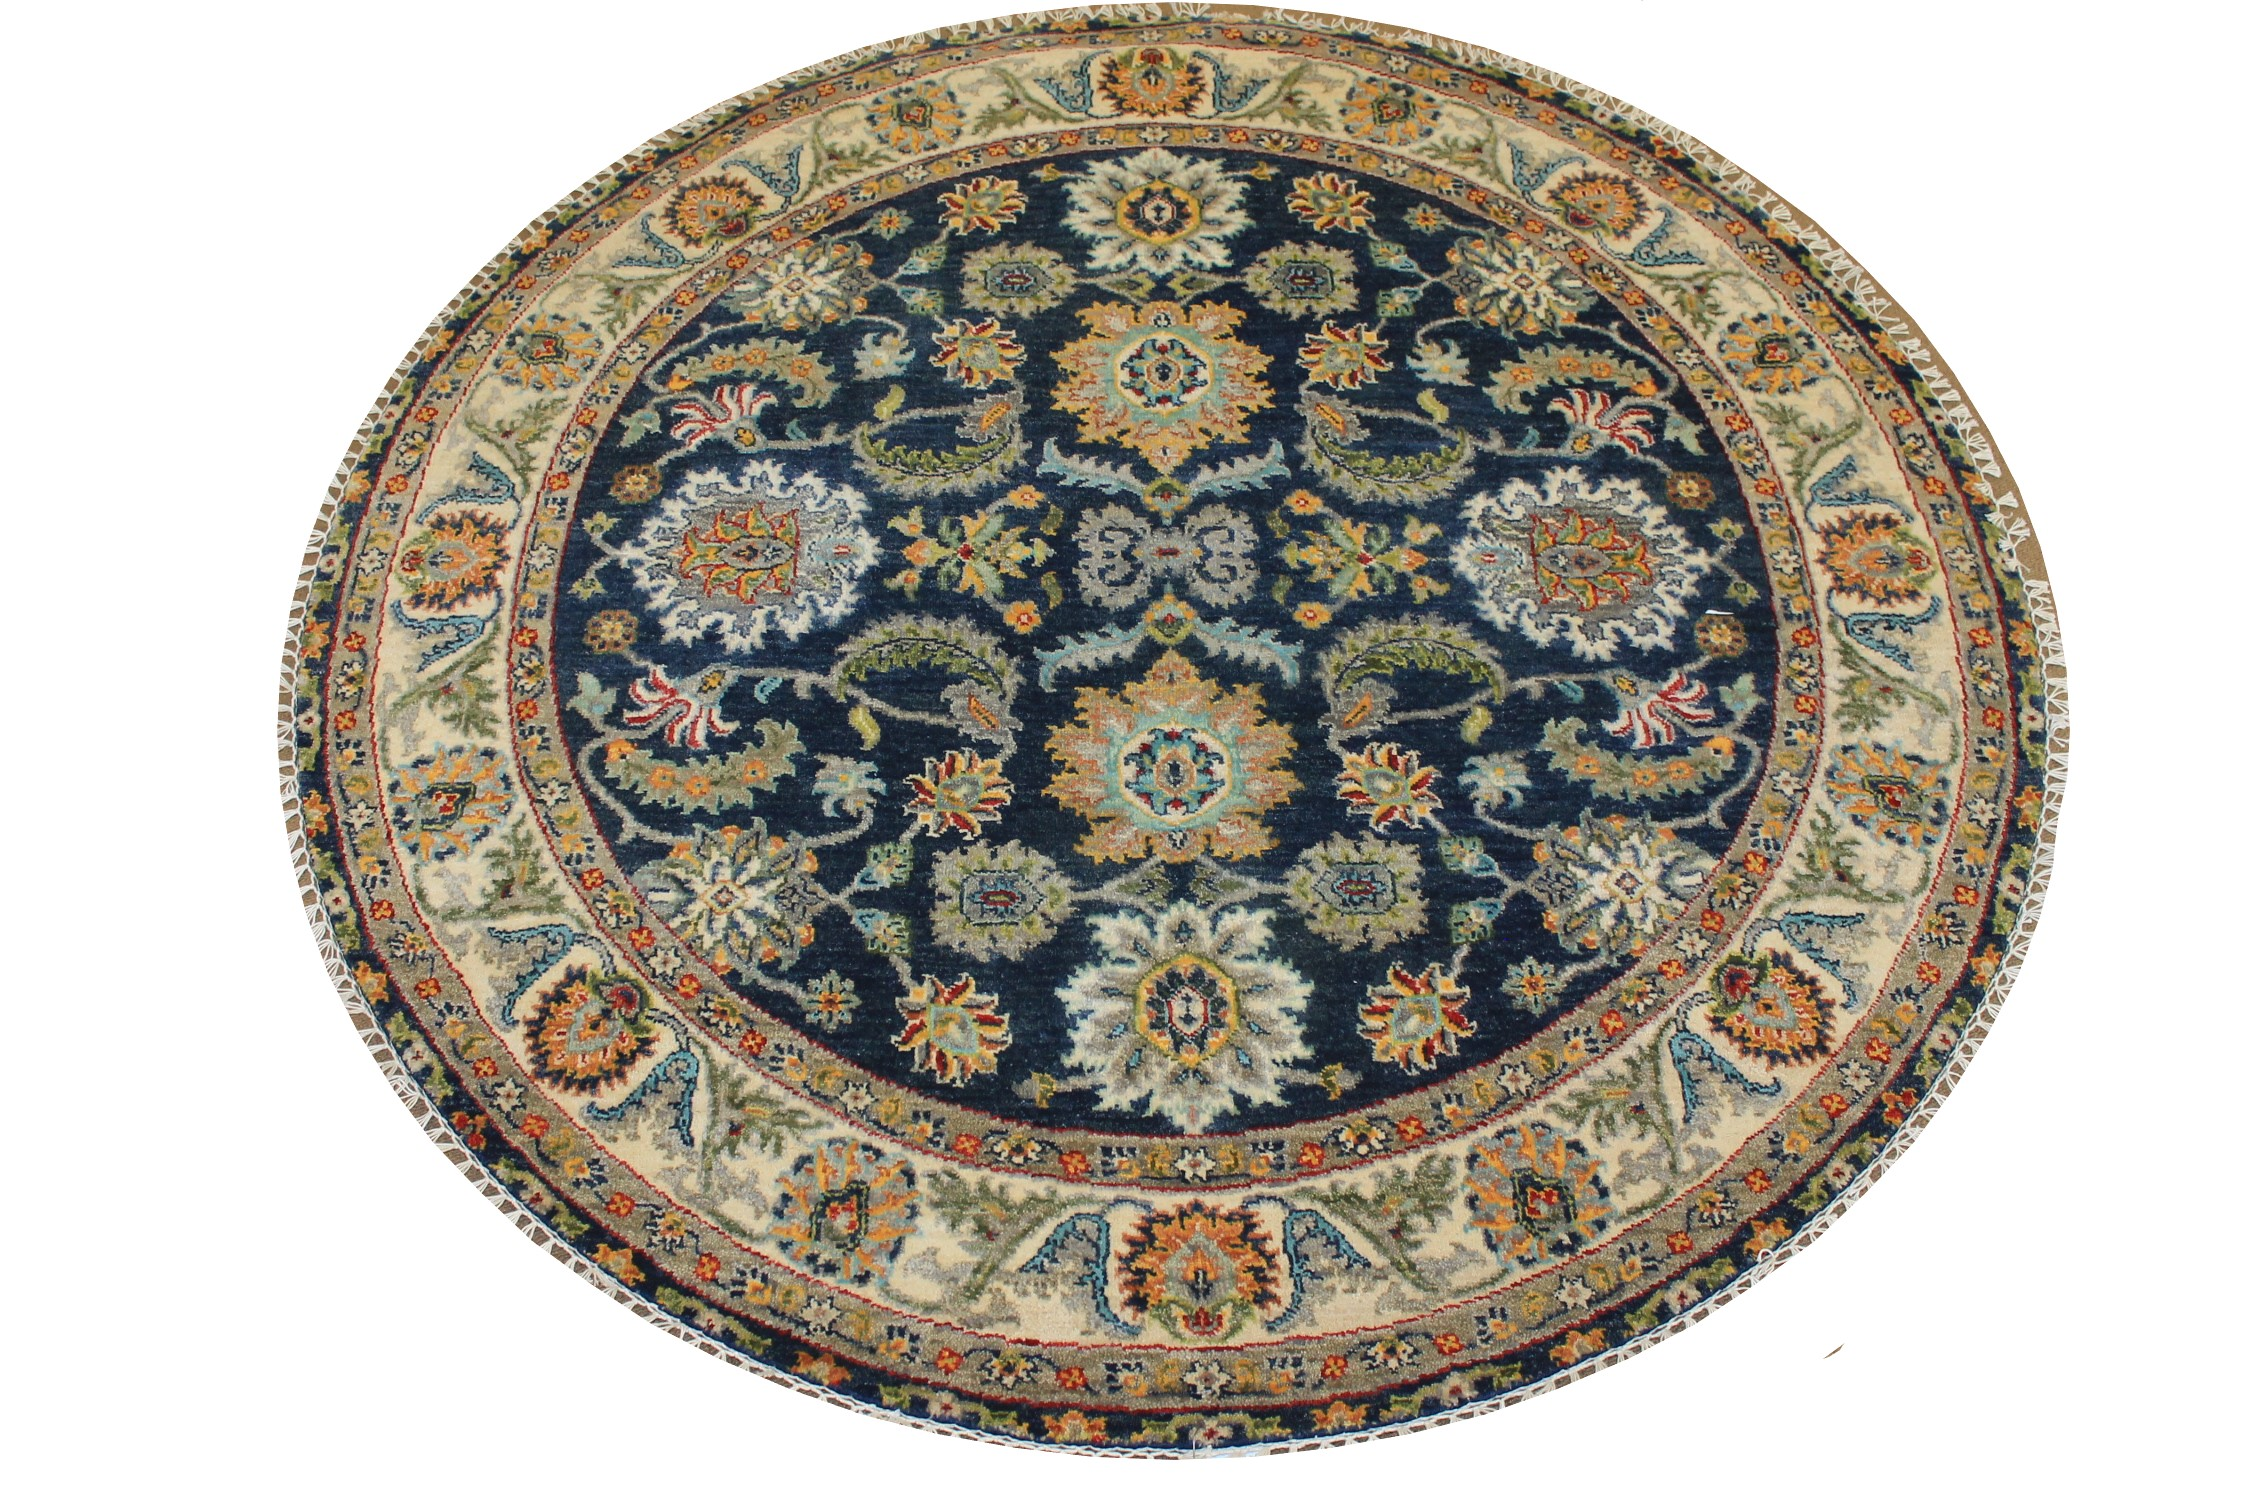 5 ft. Round & Square Traditional Hand Knotted Wool Area Rug - MR024744